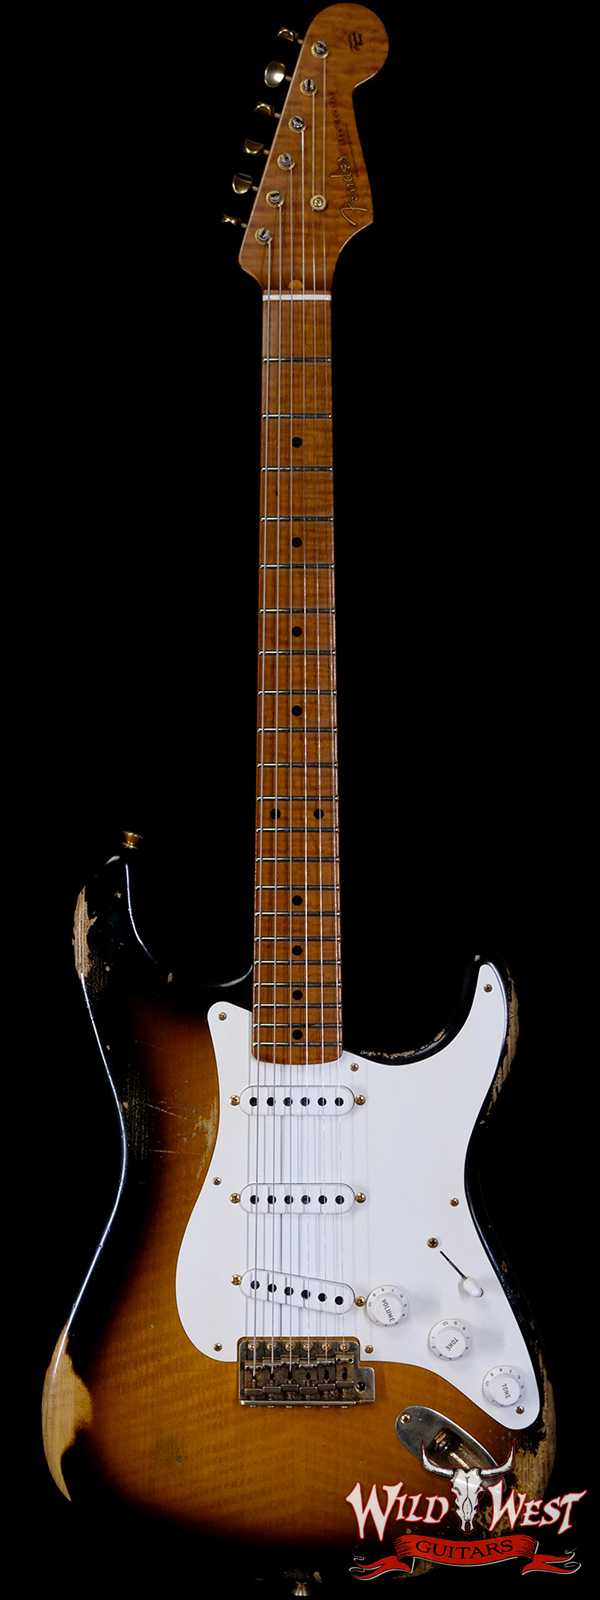 Fender Custom Shop Kyle McMillin Masterbuilt 1955 Stratocaster Relic Roasted 3A Flame Maple Neck Hand-Wound Pickups 2 Tone Sunburst